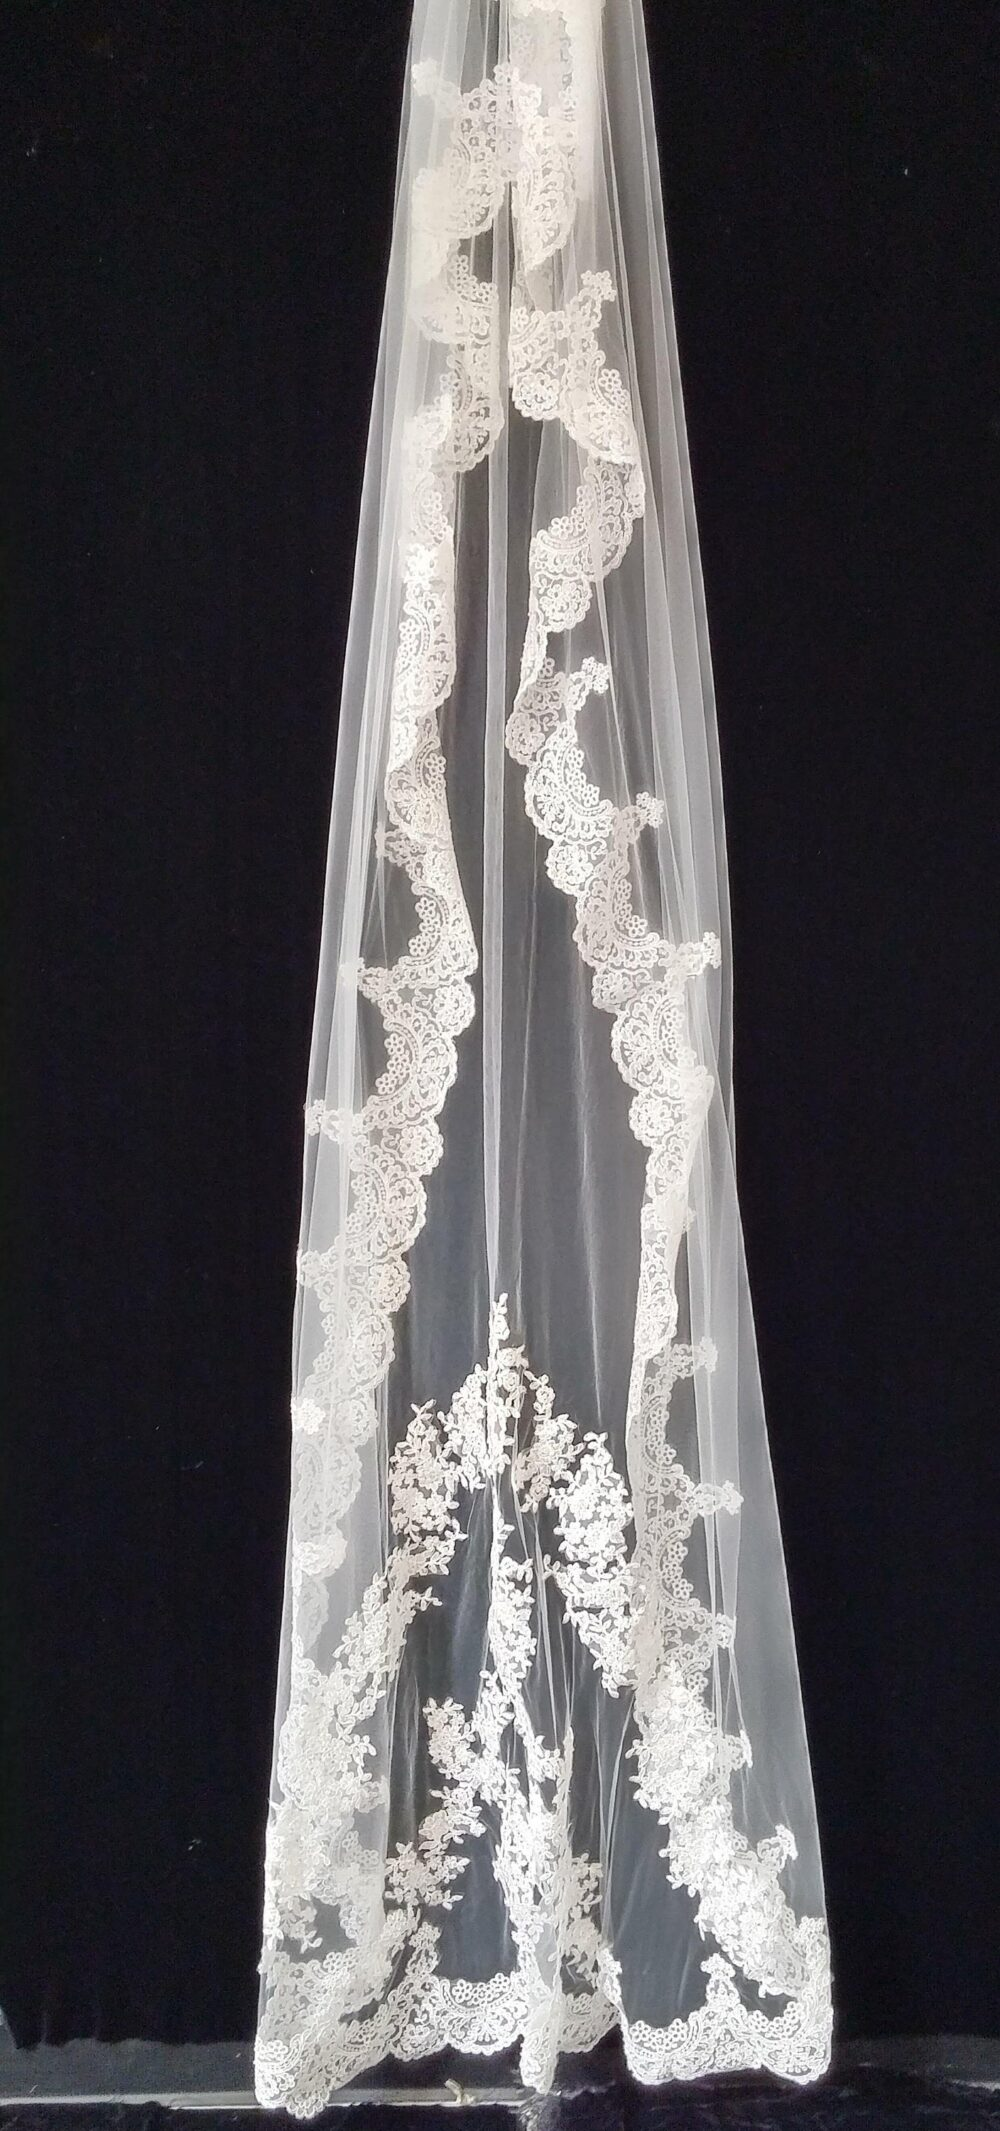 "One-Tier Wedding Veil/Veils With Appliques Lace Tulle Length 108"" ; Width 75"" Lace Trim From Top To Down"